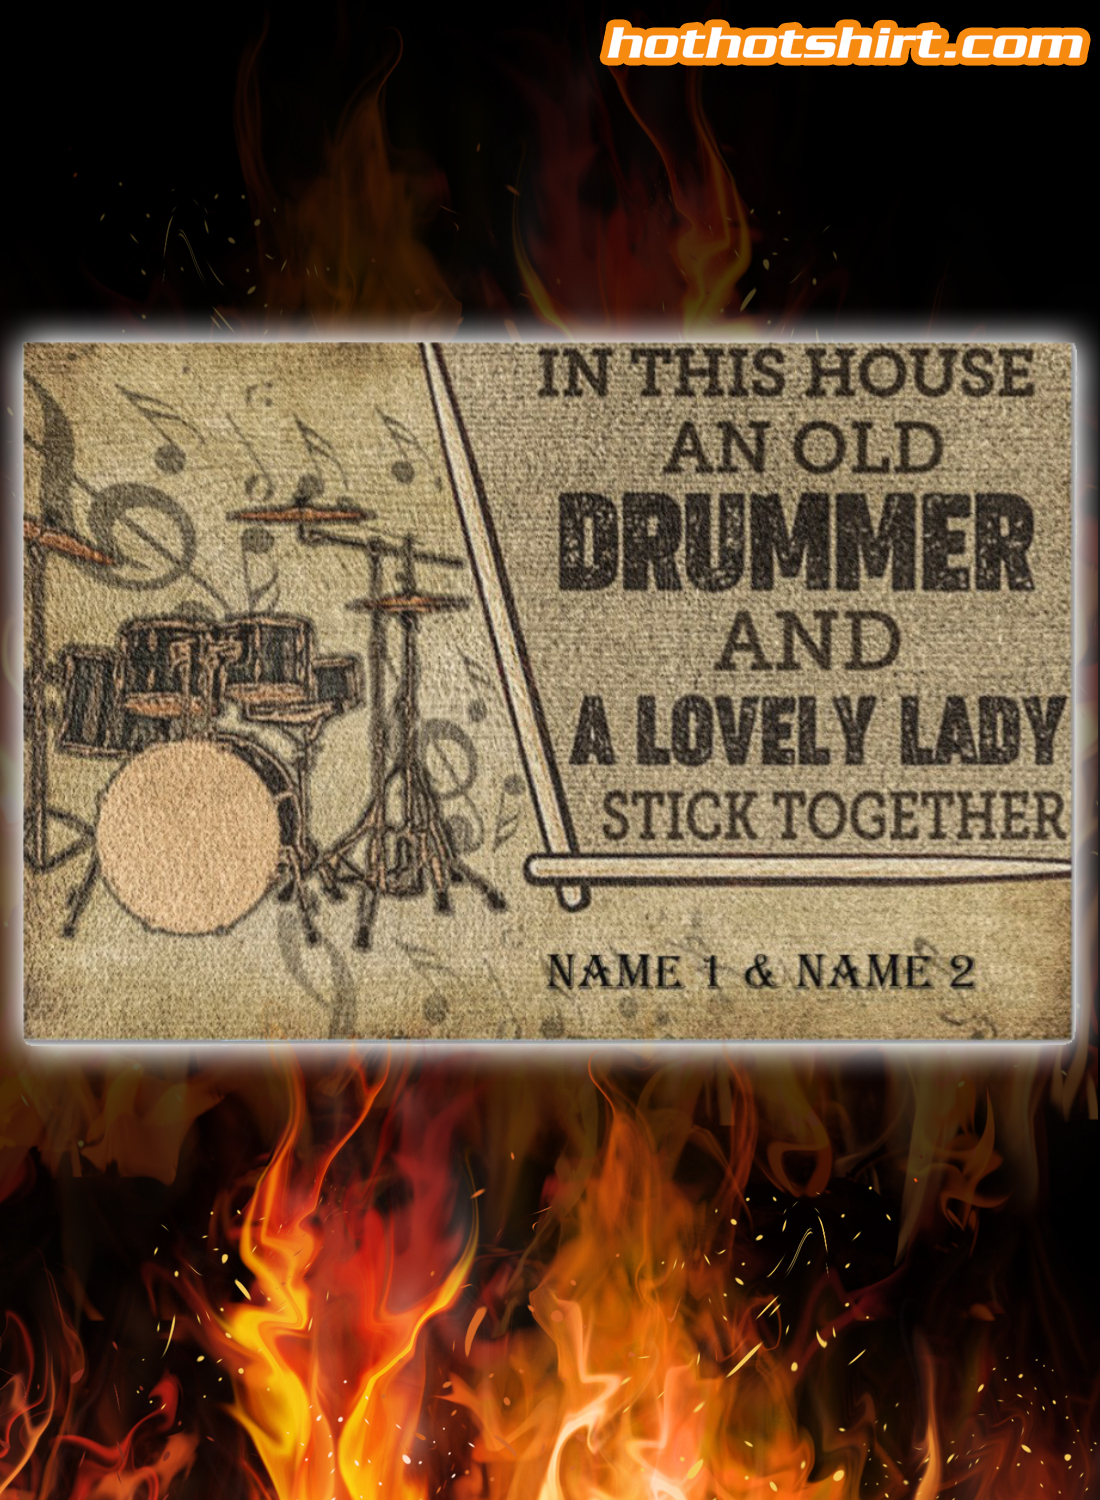 Drummer and a lovely lady stick together personalized doormat